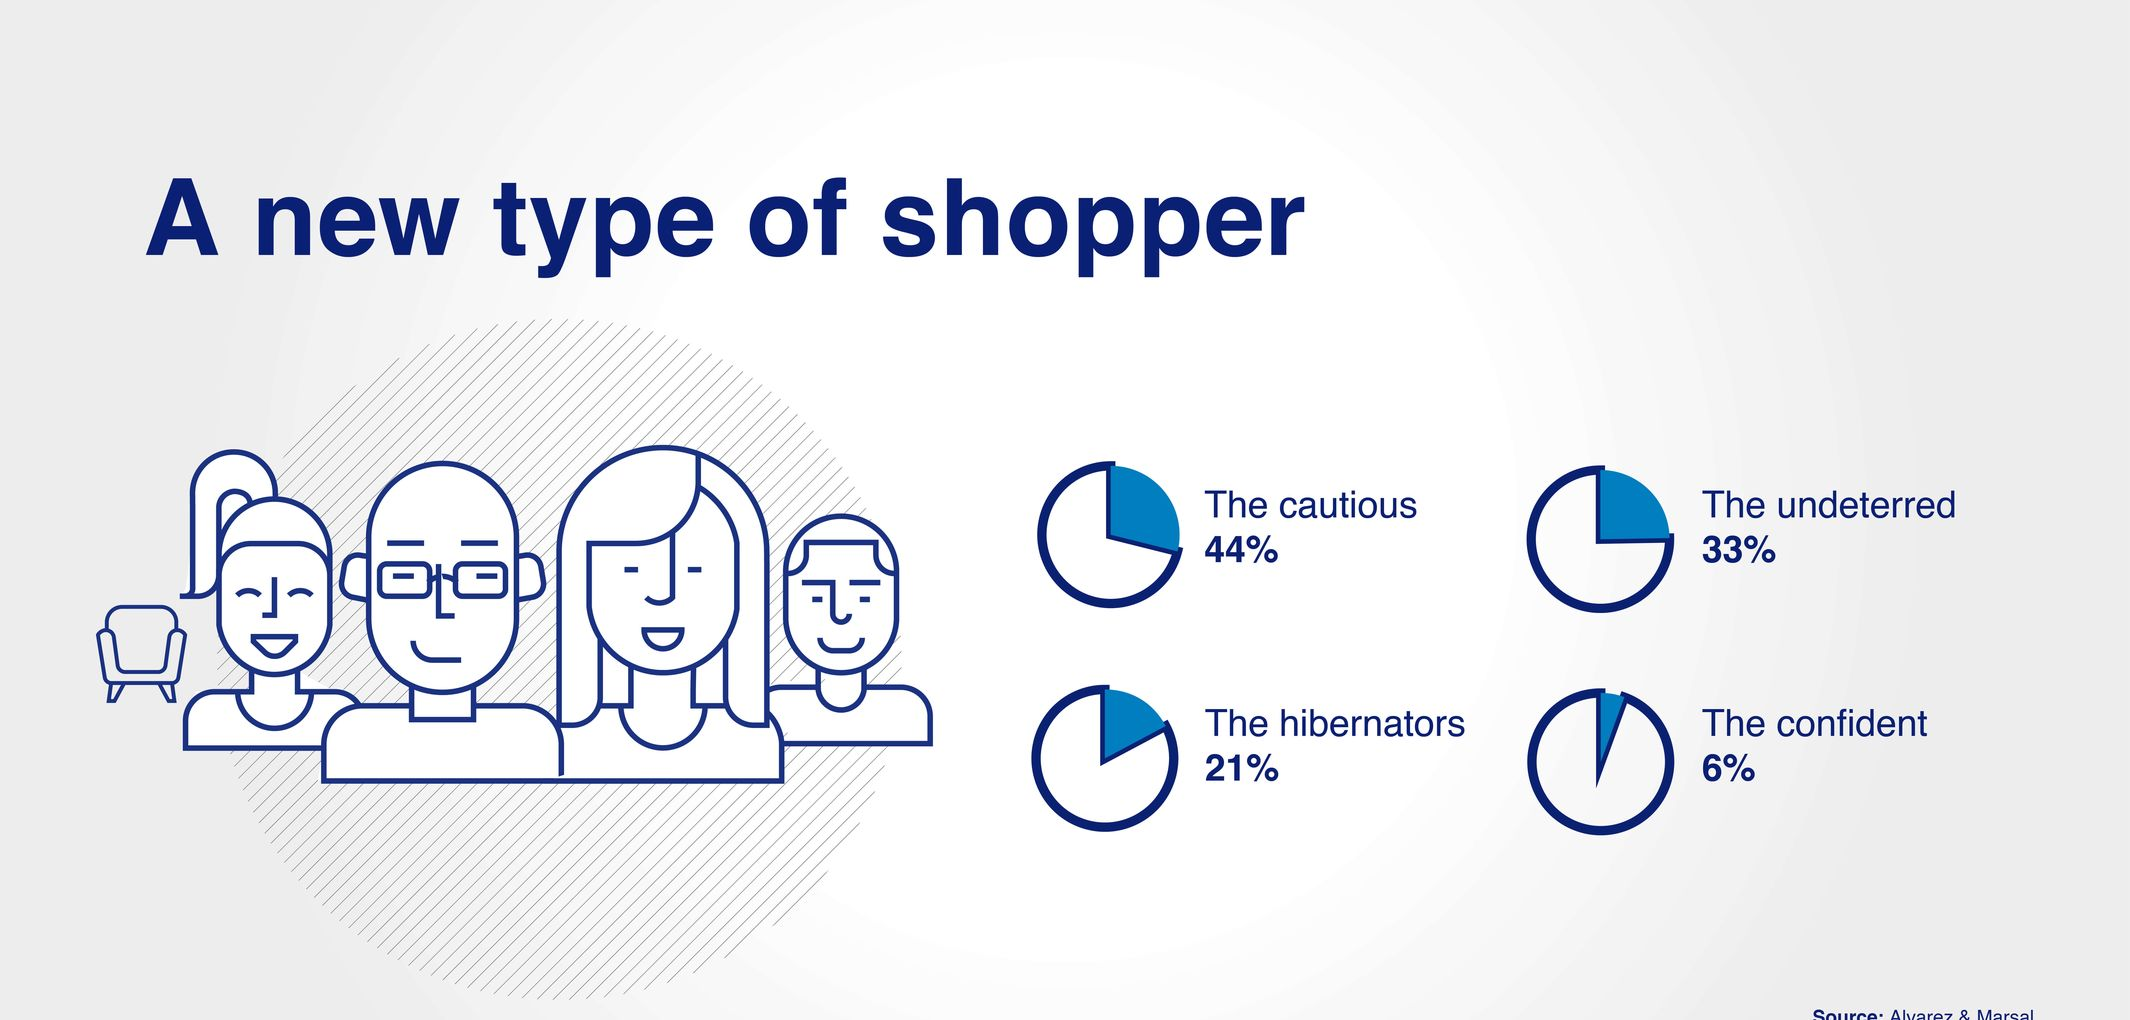 A new type of shopper